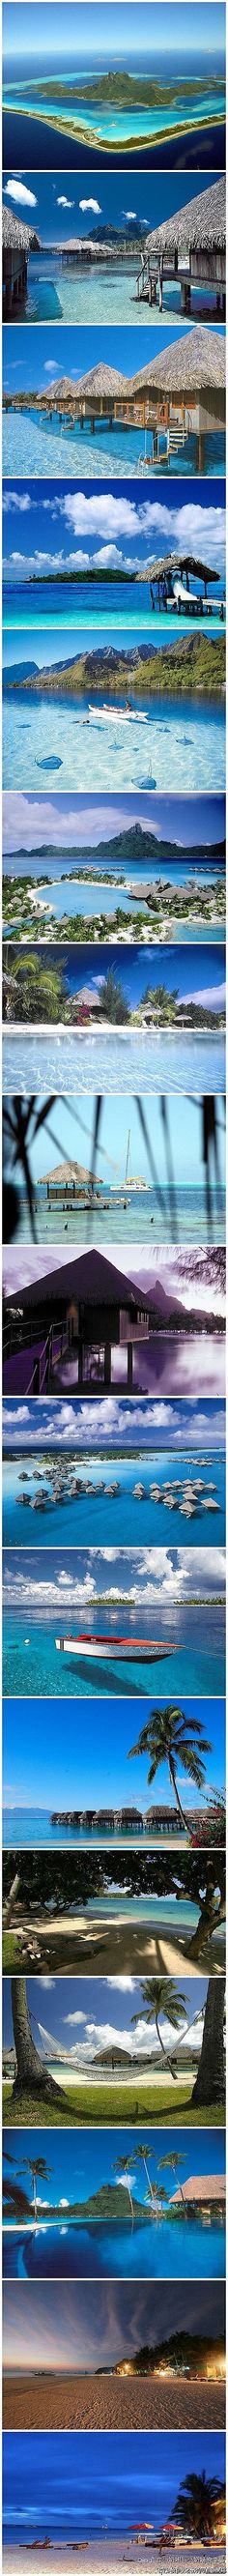 Tahiti's, Bora Bora Didn't go on a honeymoon but did go for our anniversary! Only heaven could be as beautiful!